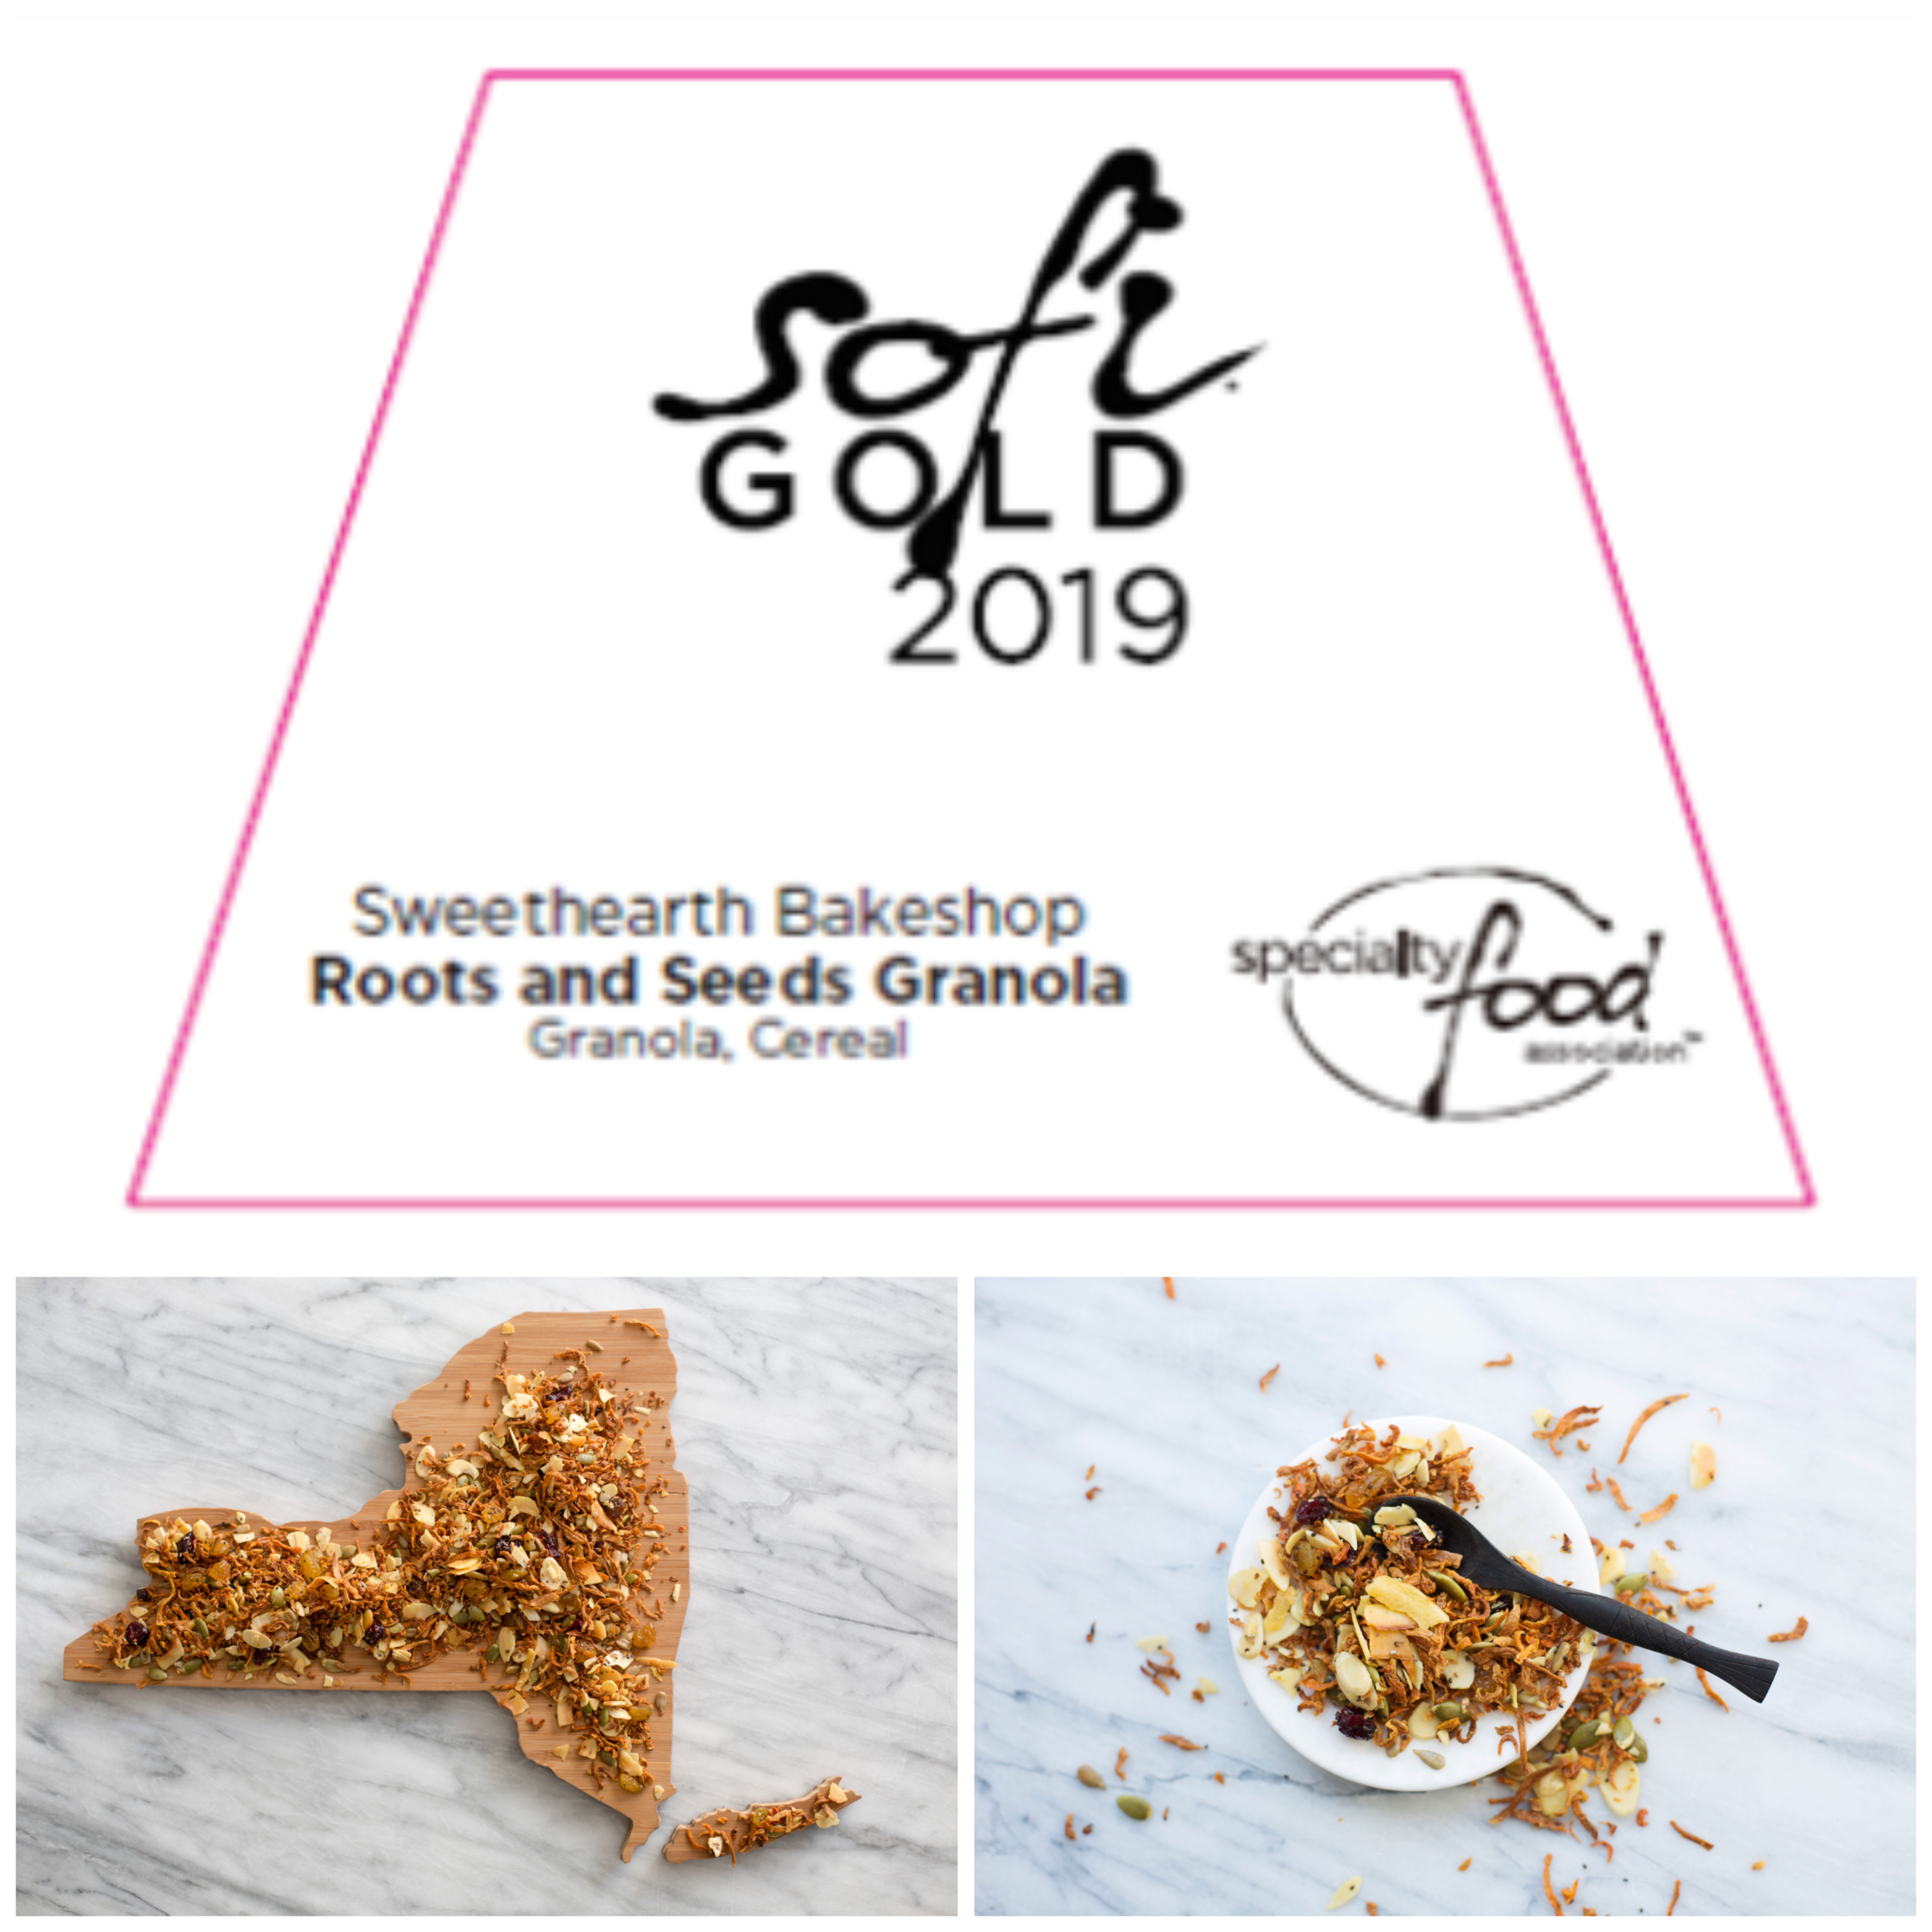 WE WON GOLD! - Our ROOTS AND SEEDS is taking home the 2019 Specialty Food Association SOFI Gold Award in the Cereal+Granola Category